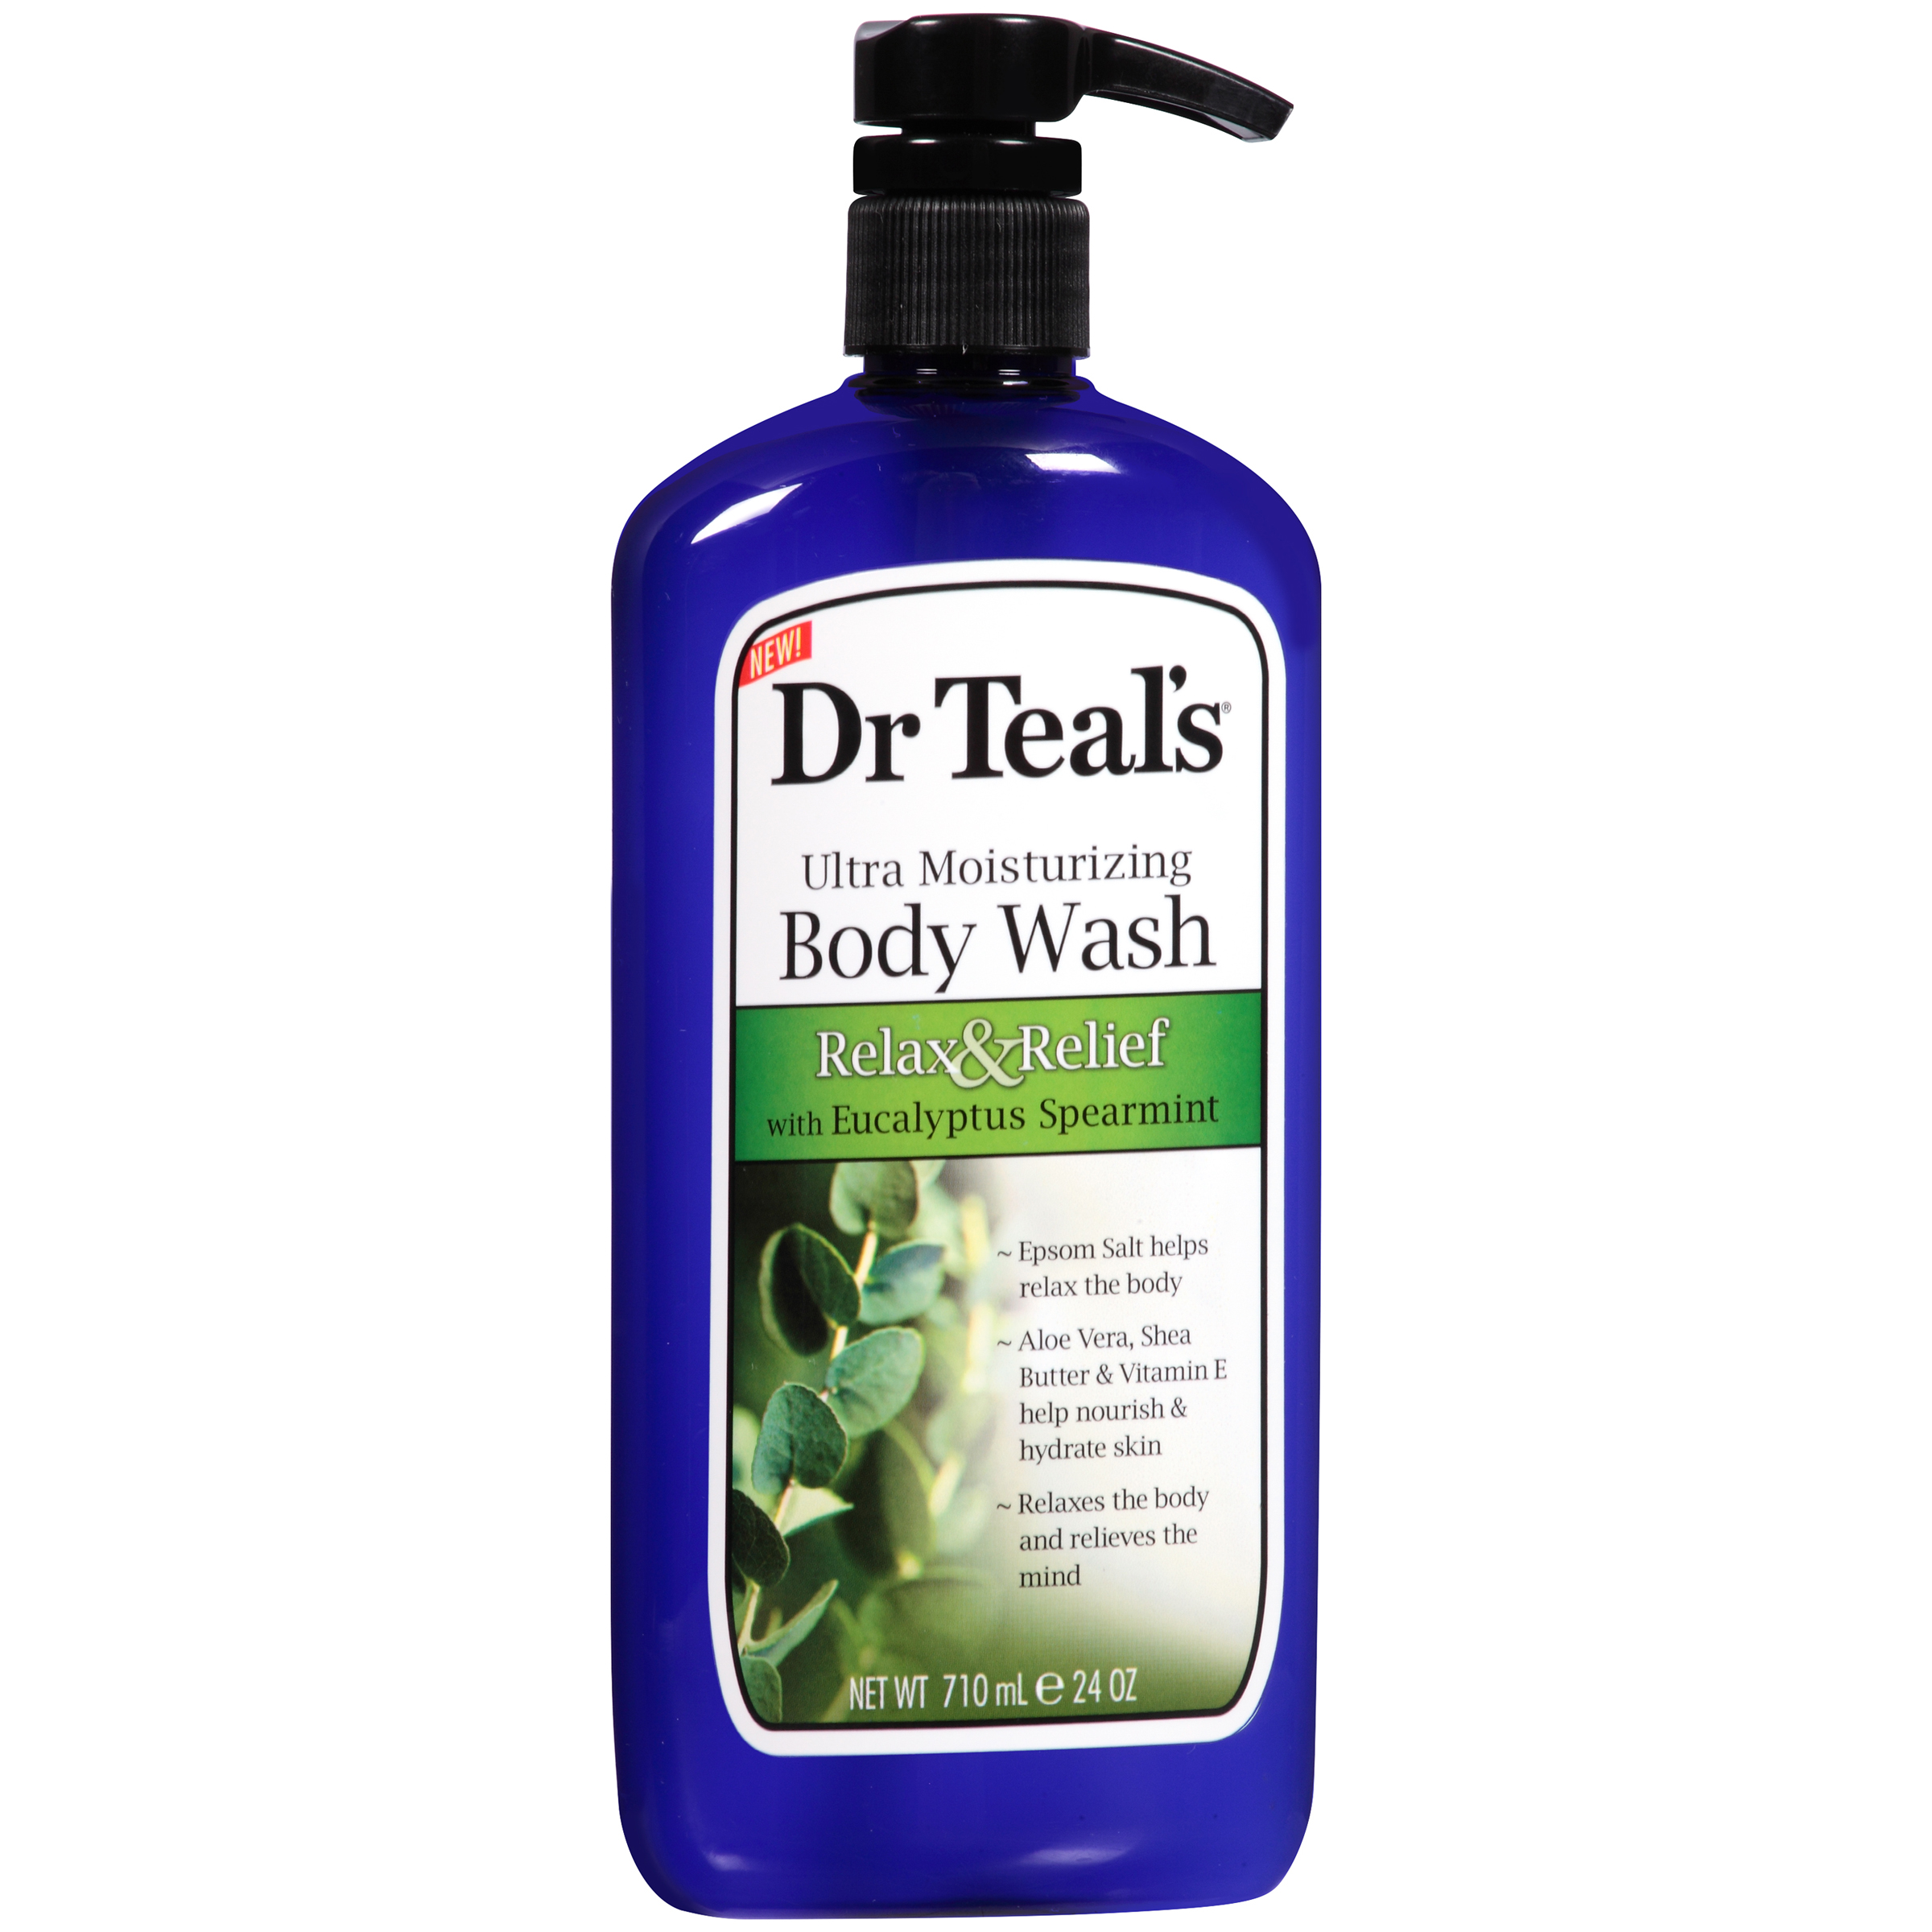 Dr Teal's® Ultra Moisturizing Relax & Relief Body Wash with Eucalyptus Spearmint 24 oz. Pump